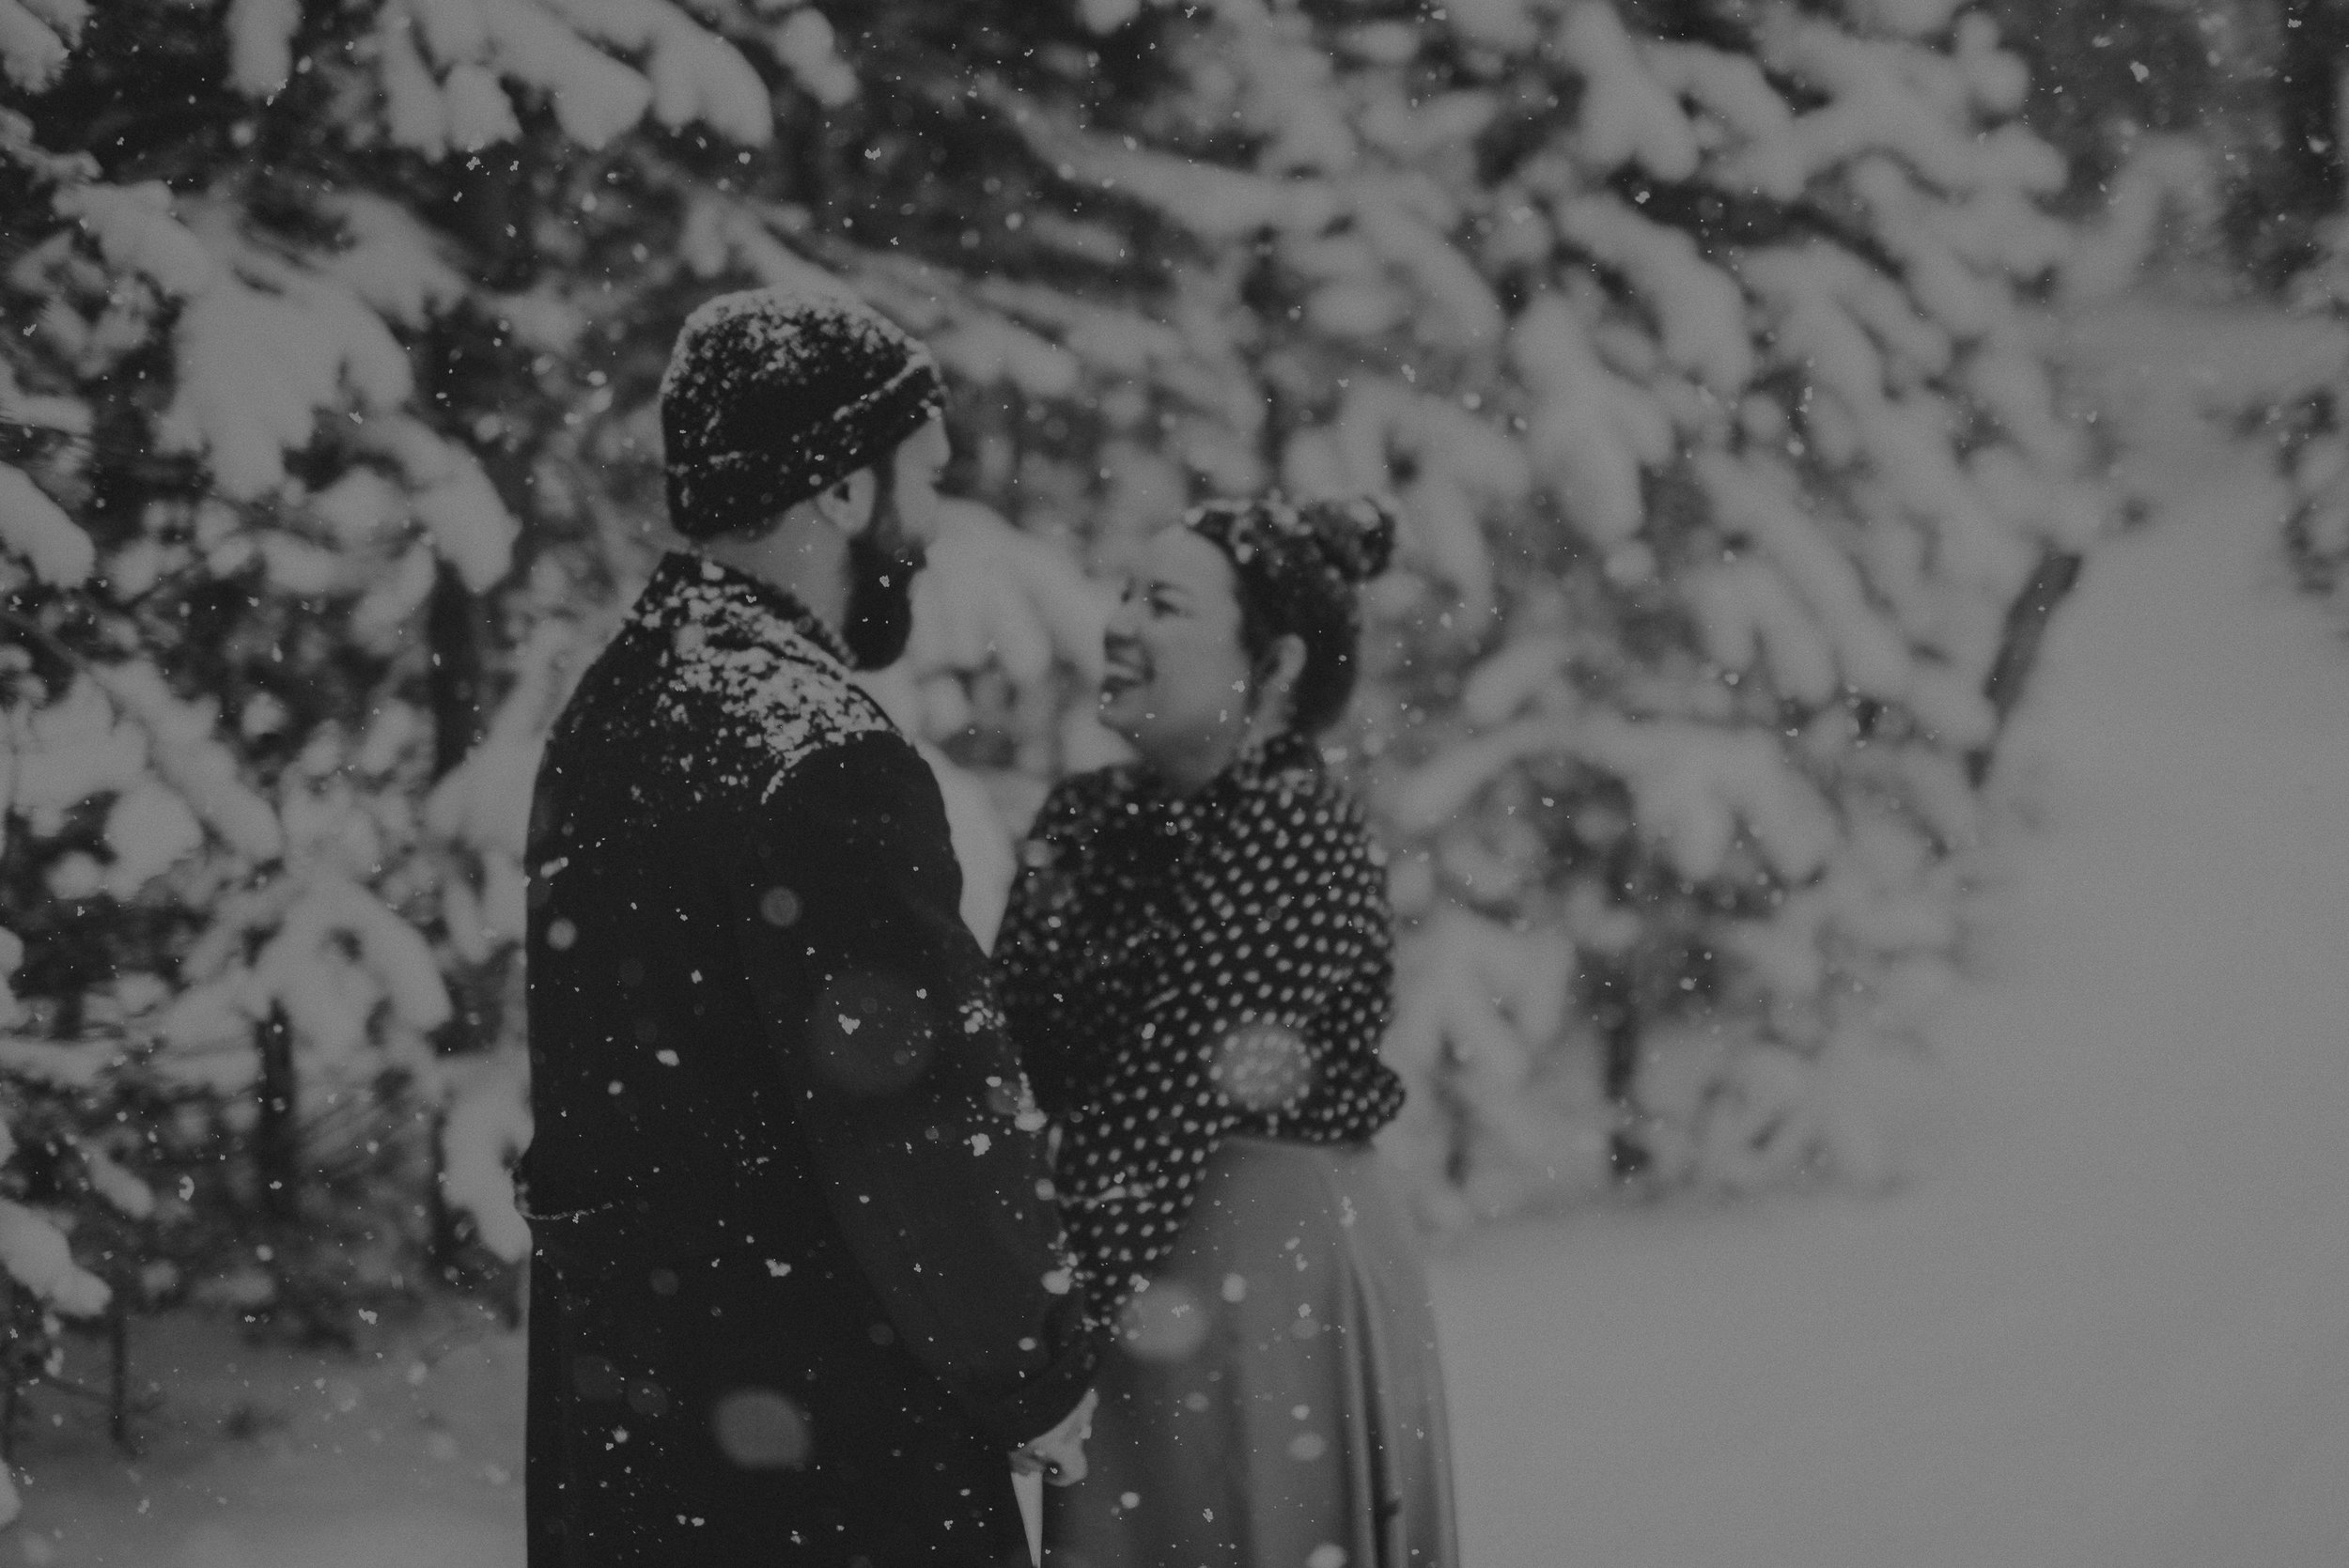 ©Isaiah + Taylor Photography - Los Angeles Wedding Photographer - Snowing engagement session-011.jpg